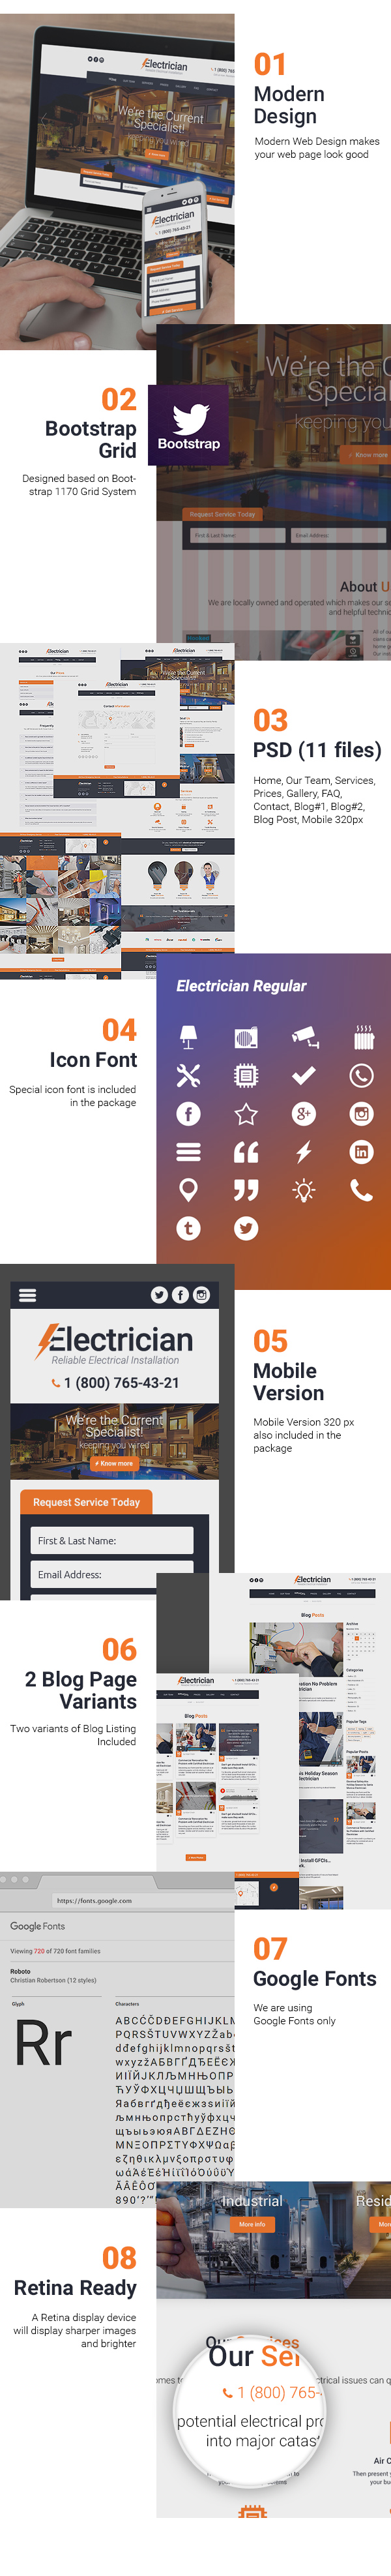 Presentation for Electrician free psd template